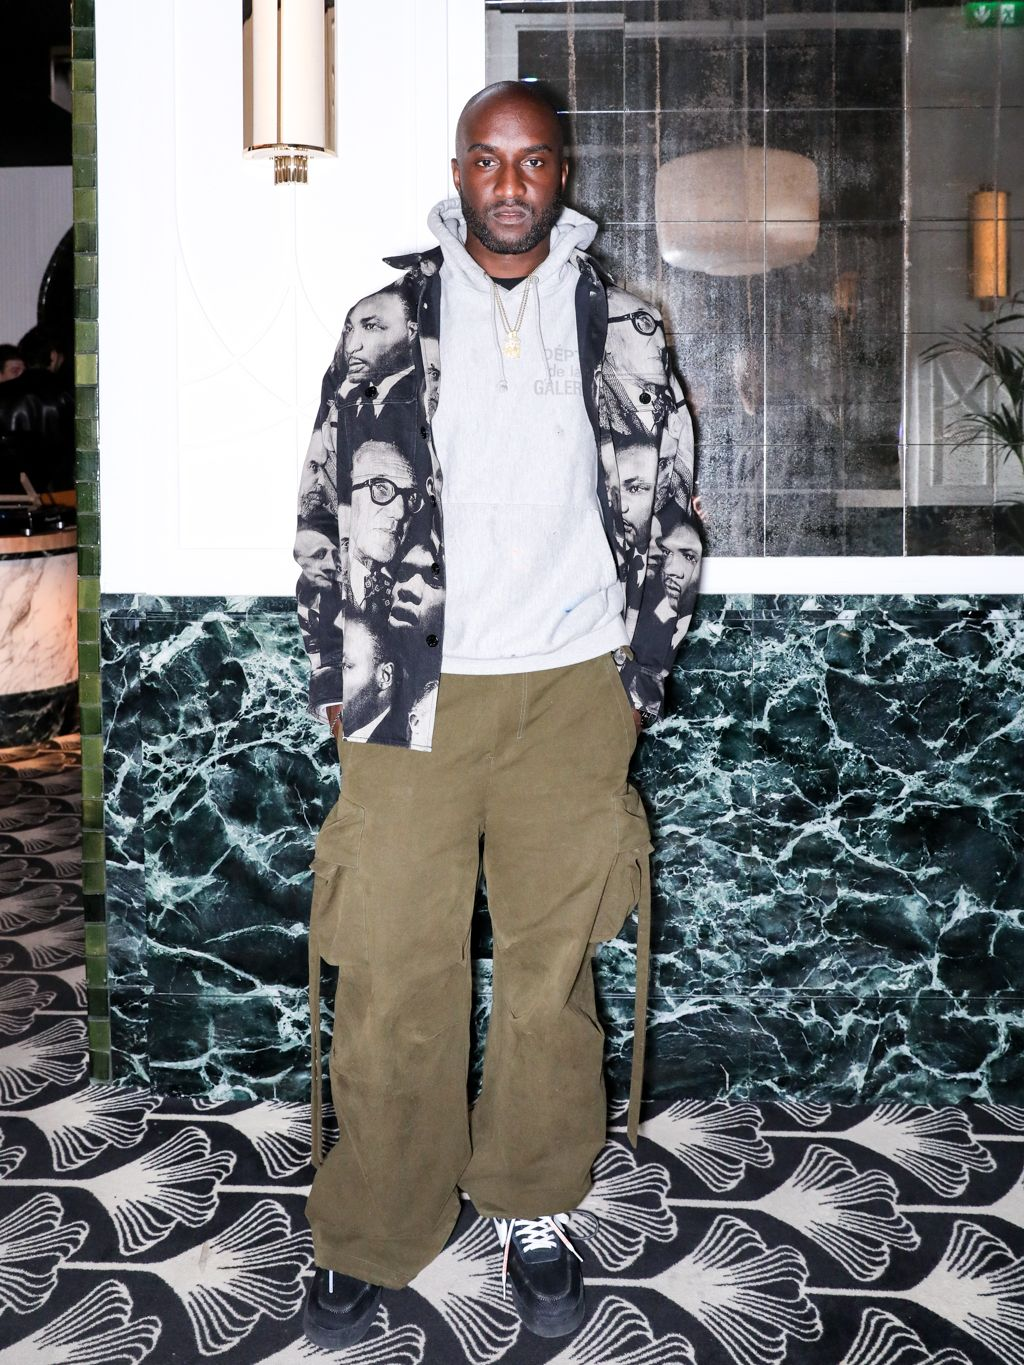 Virgil Abloh Virgil Abloh along with DJ Peggy Gou celebrated the launch of her first Kirin collection with a special dinner at Beefbar in Paris on February 26.